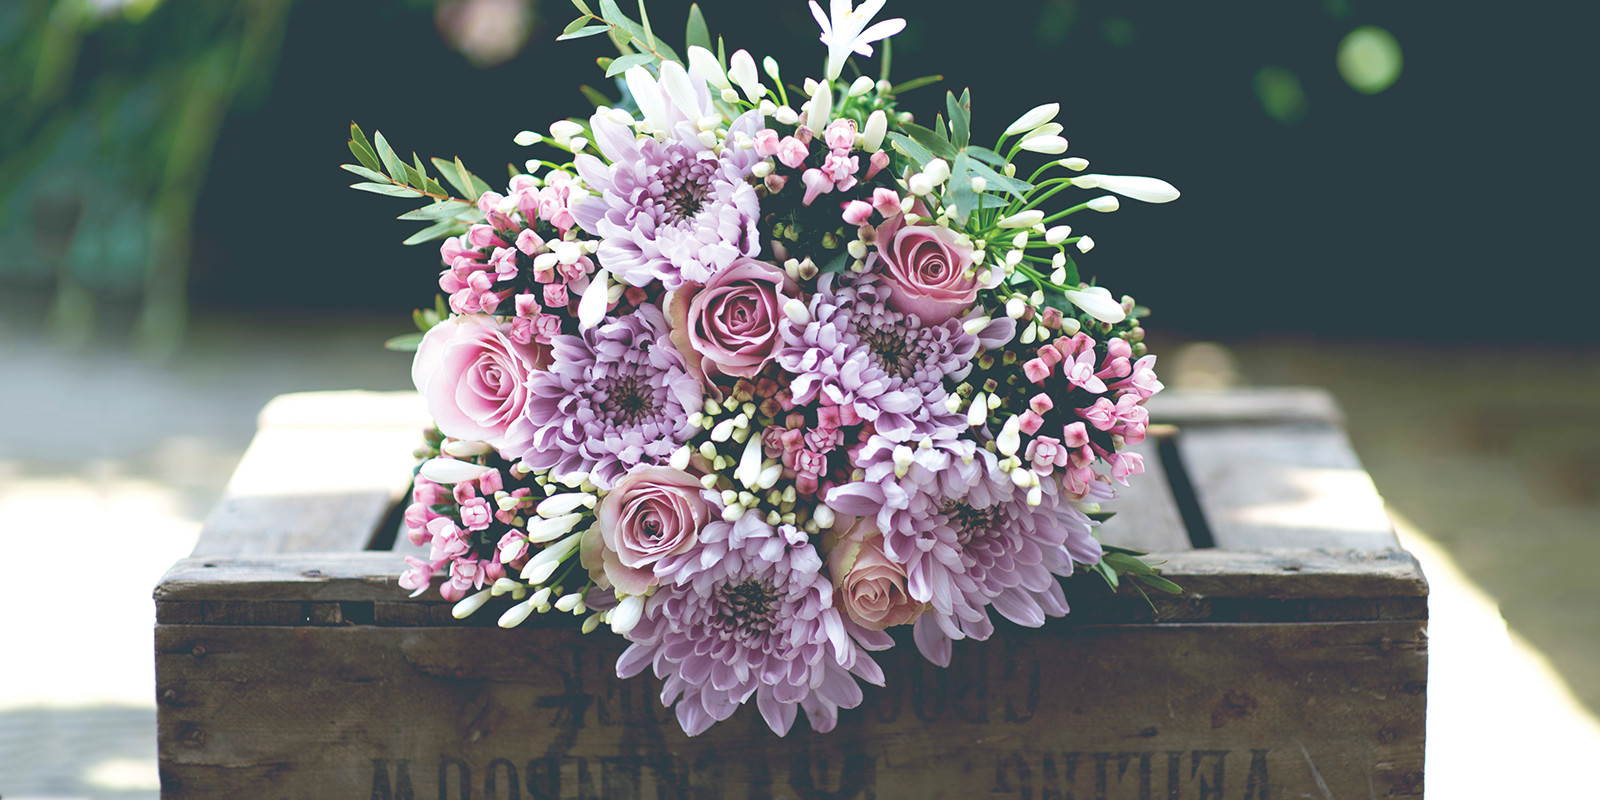 Bouquet on a flower crate